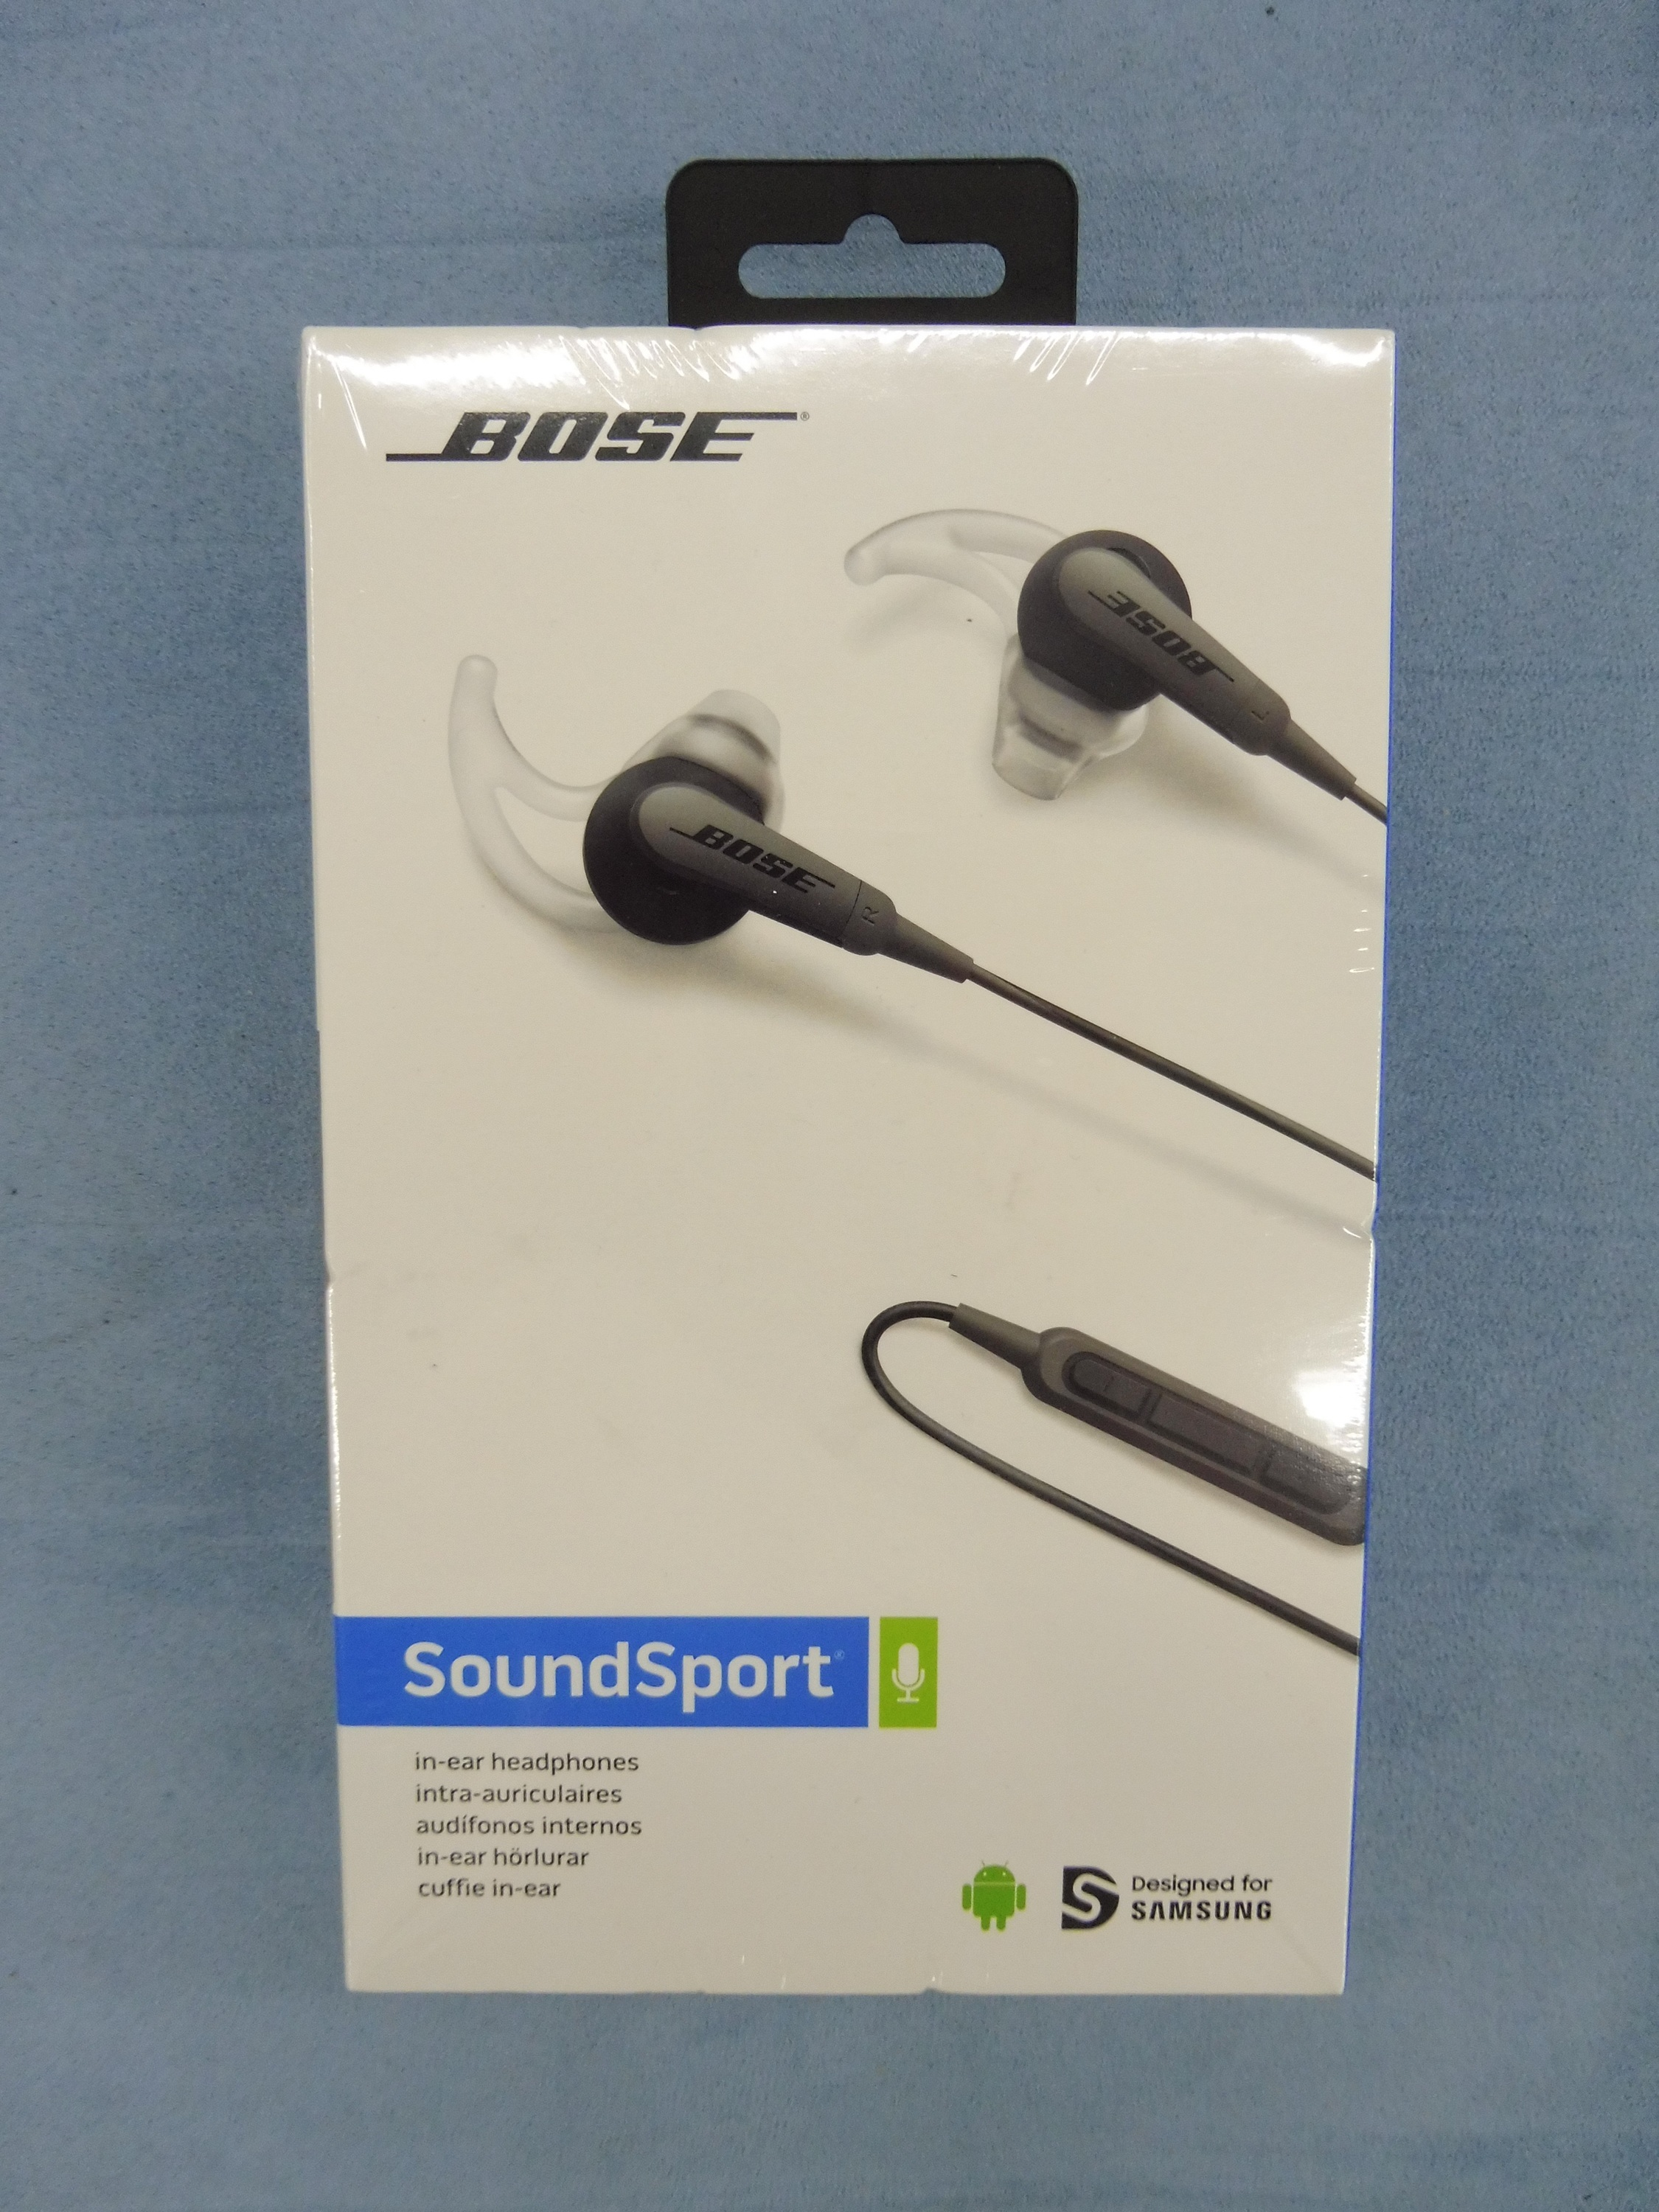 bose soundsport ie hdphn schwarz in ohr kopfh rer ebay. Black Bedroom Furniture Sets. Home Design Ideas